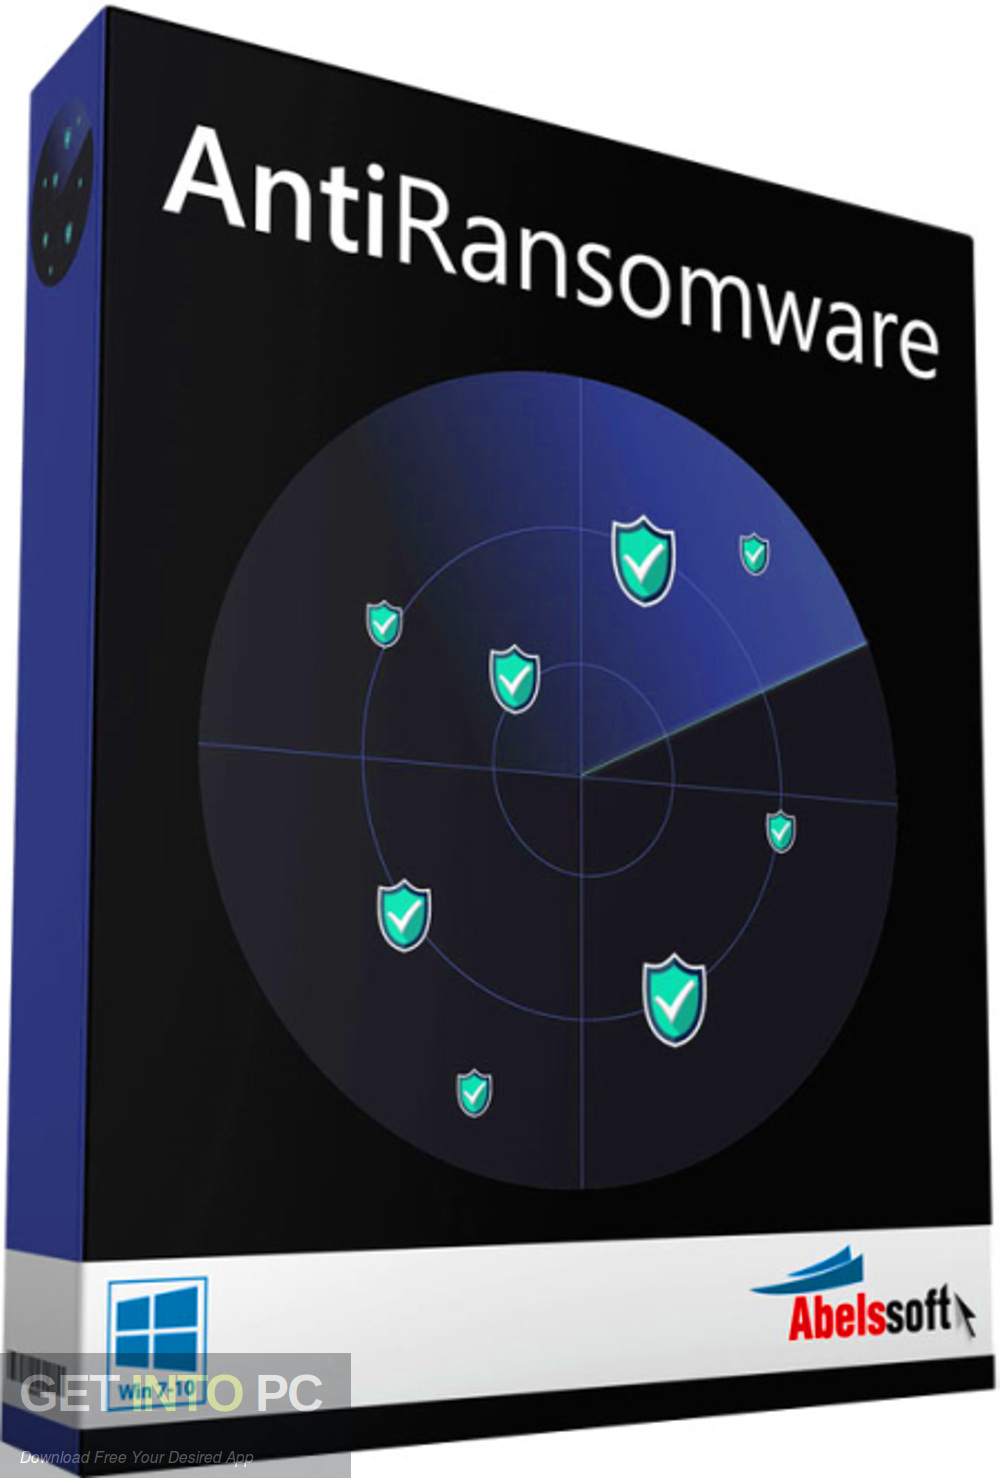 AntiRansomware 2020 Free Download-GetintoPC.com